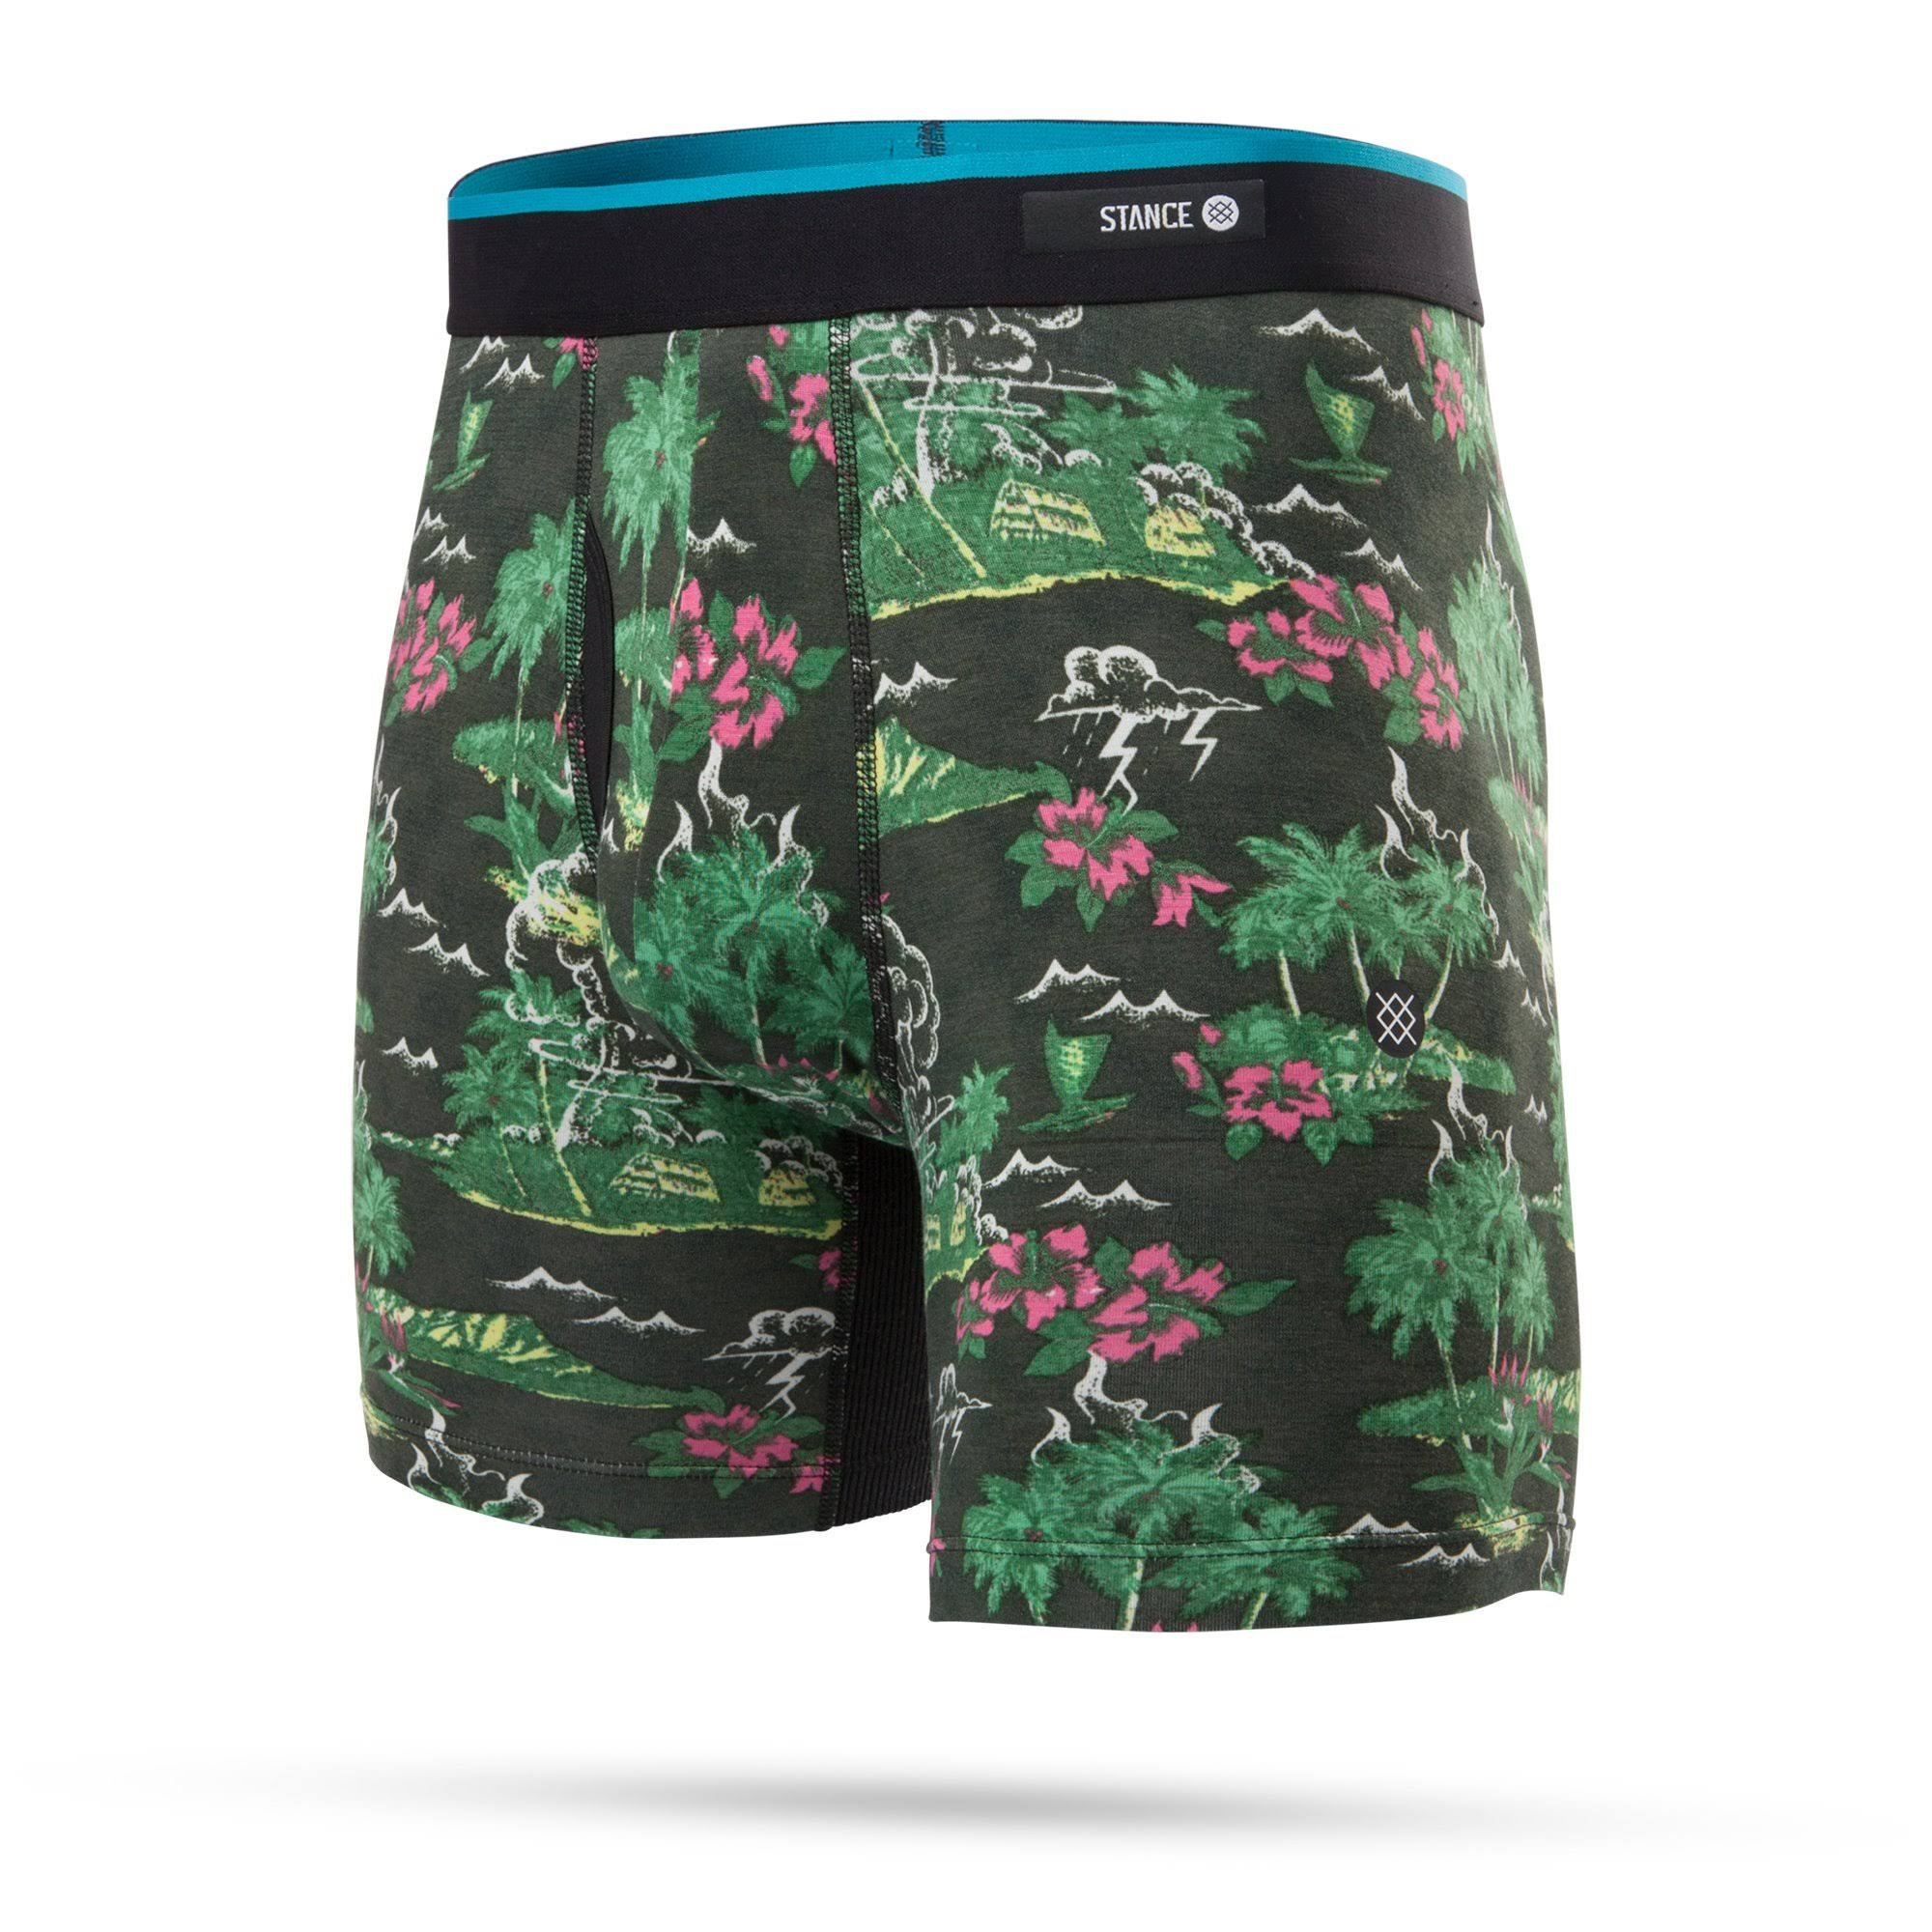 Stance Butter Blend Boxer Brief - Men's Aloha Storm/Black, M